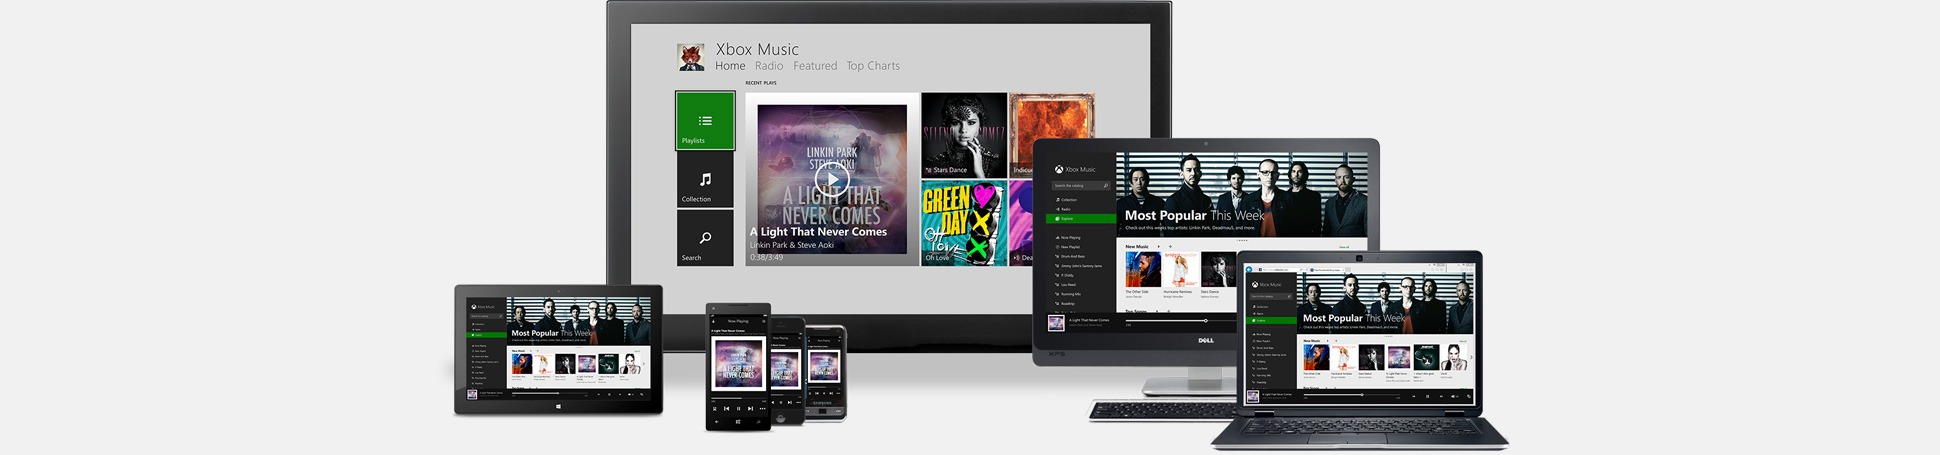 Stream millions of songs on Windows 8 and Windows RT